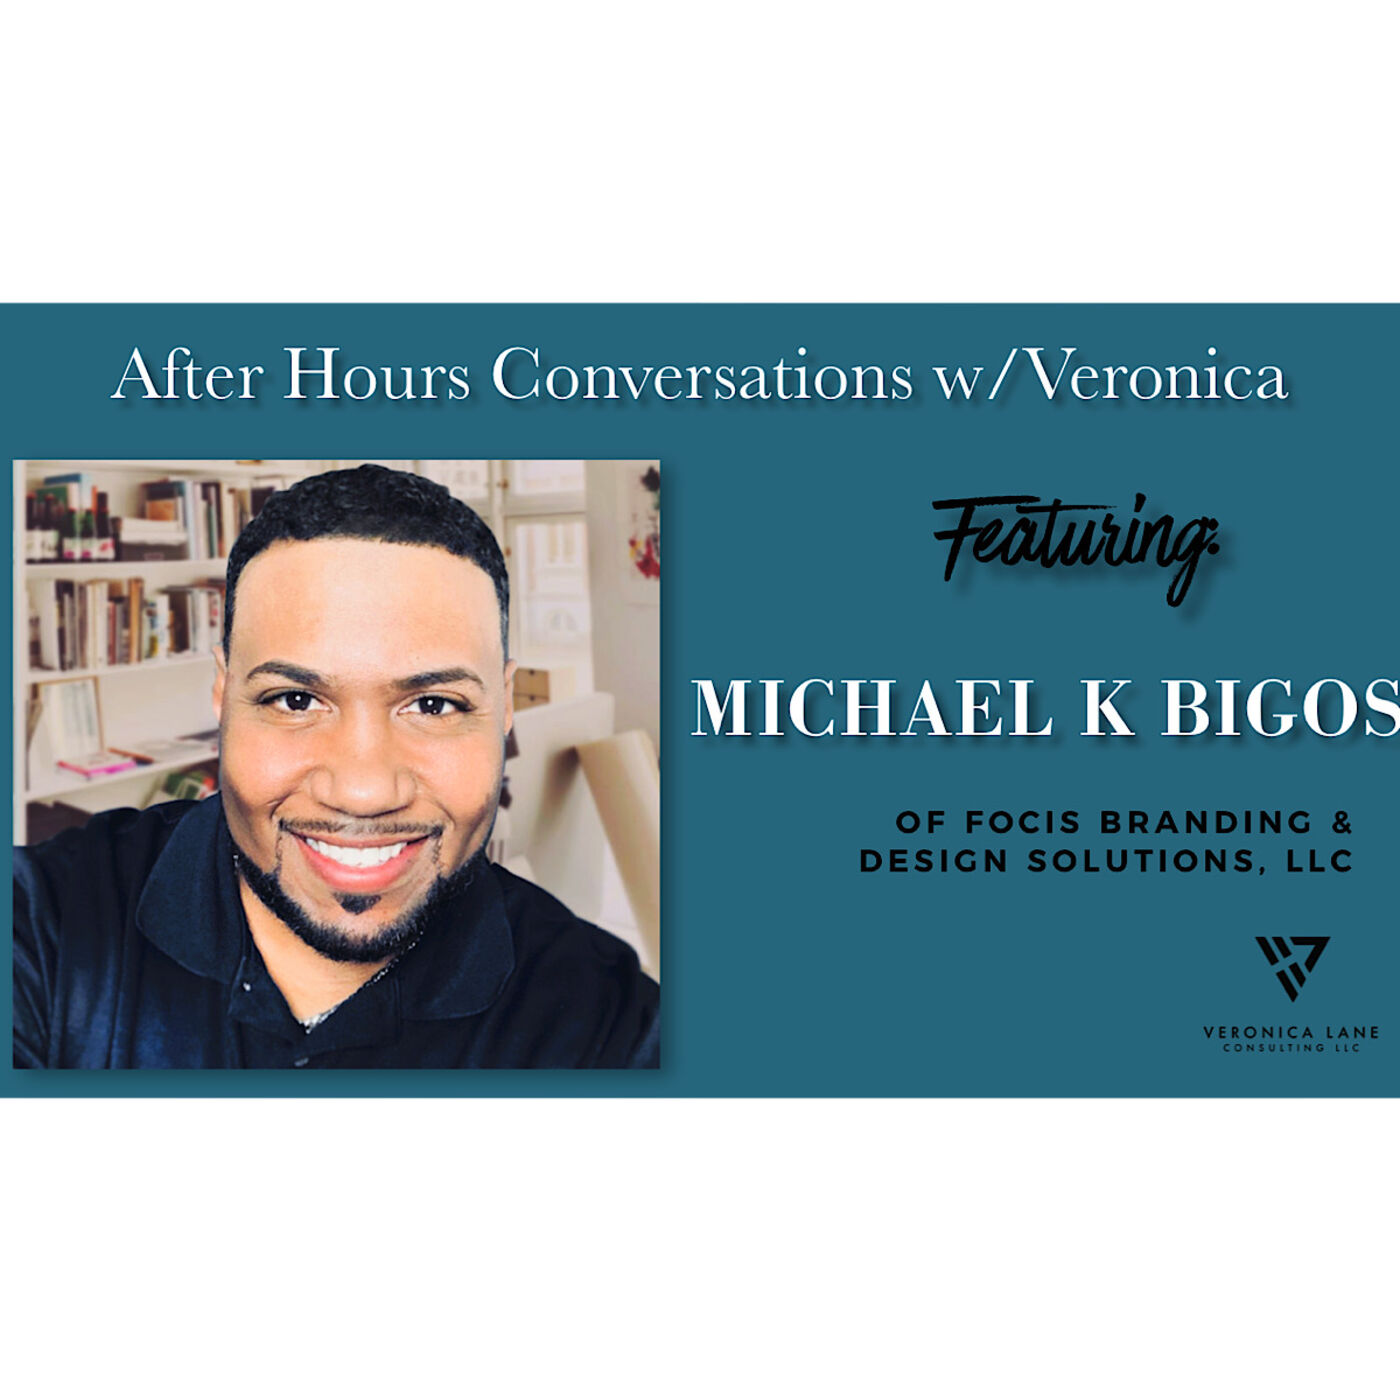 The Project Management Behind Focis Branding & Design: Featuring Michael K. Bigos